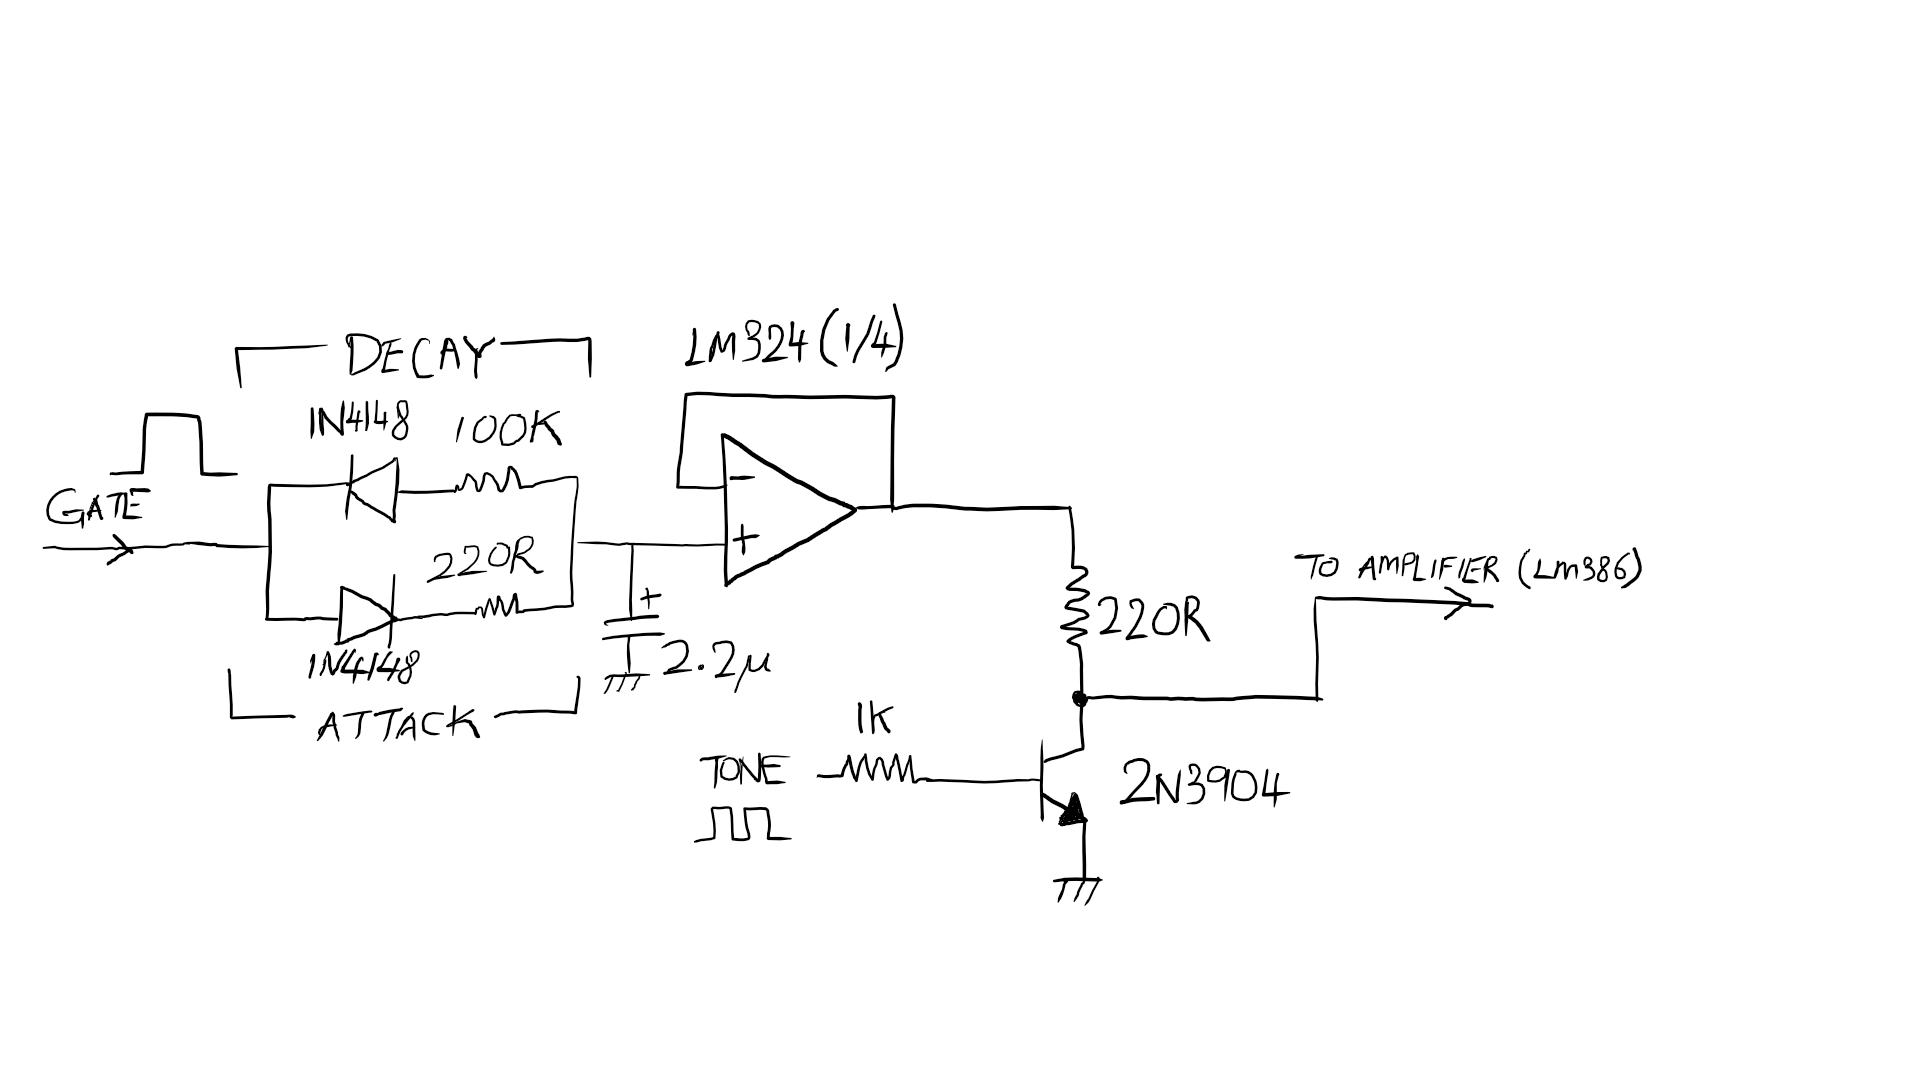 hight resolution of to reduce the extra components used and as a prototype i modified this to the following schematic apologies for my crappy handwriting i used a cheap